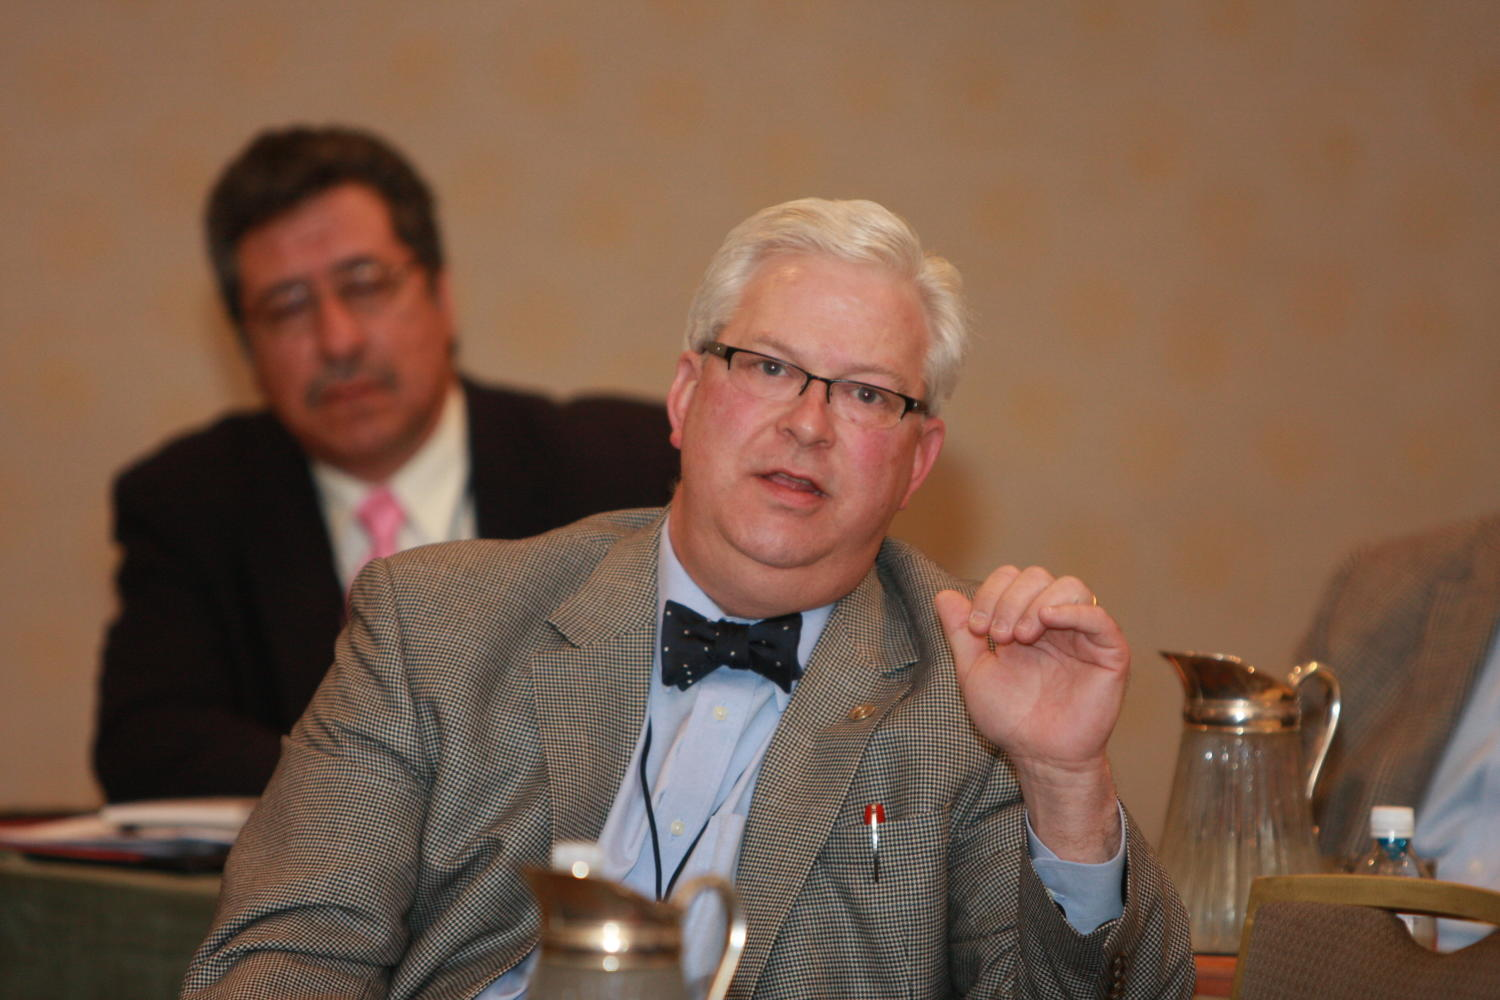 [Patrick Canty seated and attending a TDNA conference], Photograph of Patrick Canty seated at elongated tables with other guests as they are attending the 2010 Texas Daily Newspaper Association annual meeting held in Houston, Texas.,